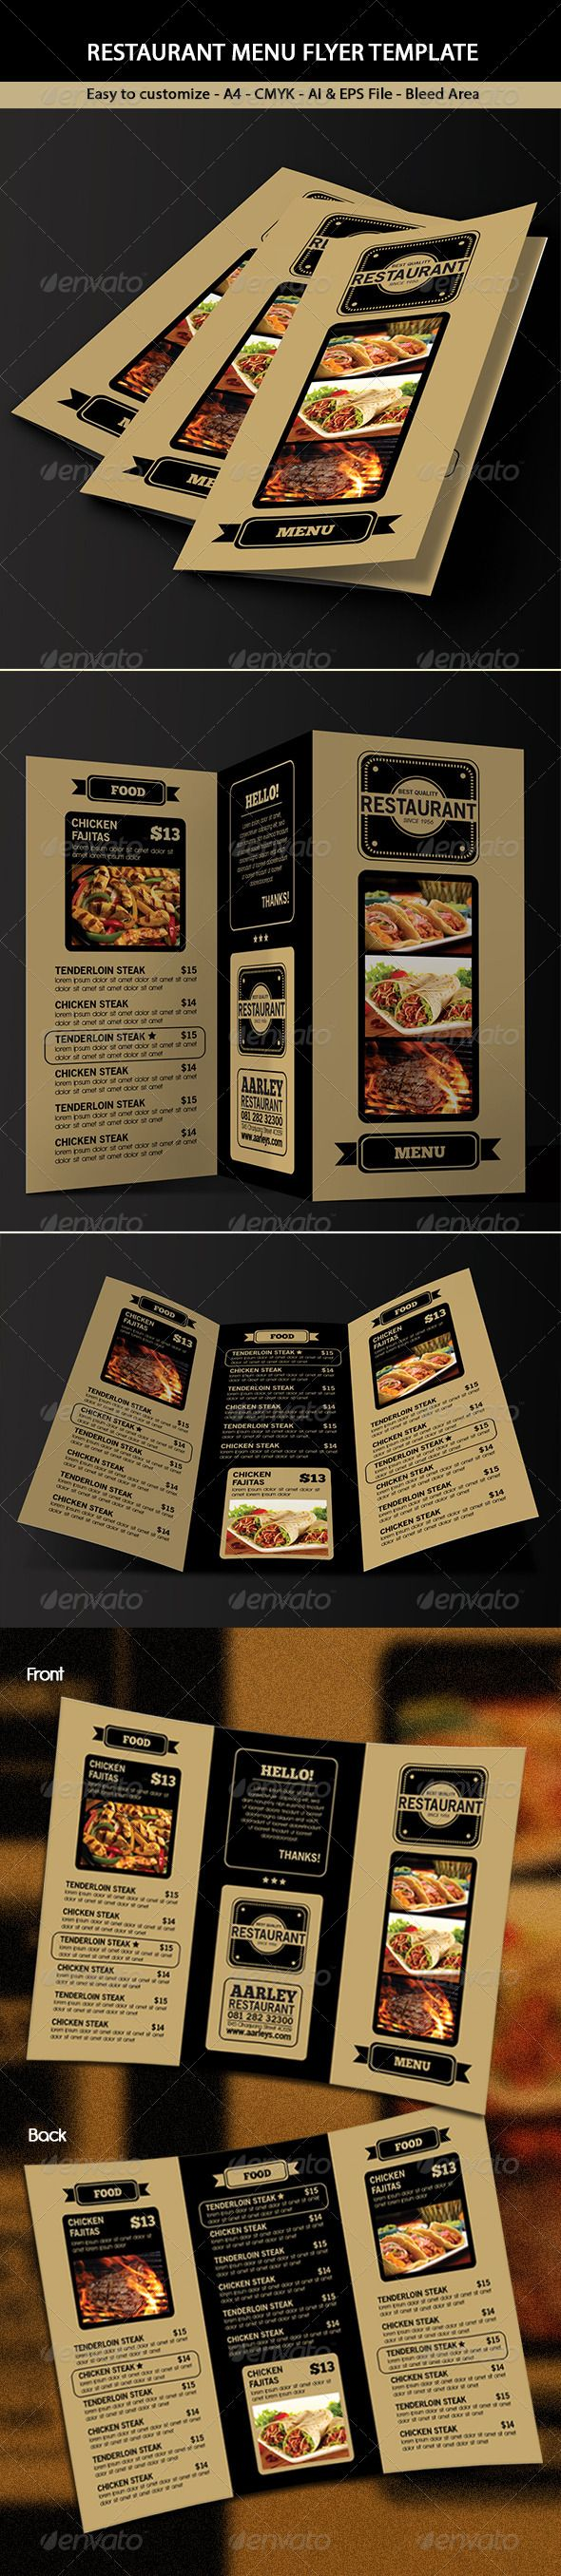 Trifold Restaurant Menu  #GraphicRiver         This Trifold Restaurant Menu Template can be used for Restaurant, Cafe, Coffee House, Steak House, etc  	 File features  	 297×210mm A4 + 3mm Bleed  	 CMYK  	 Customizable Text  	 Front & Back  	 Vector  	 AI & EPS File  	 Font used :   .dafont /antipasto.font  .dafont /chunkfive-ex.font  .dafont /old-sans-black.font 	 *Product images are not included  	 Thanks!                     Created: 29 November 13                    Graphics Files…